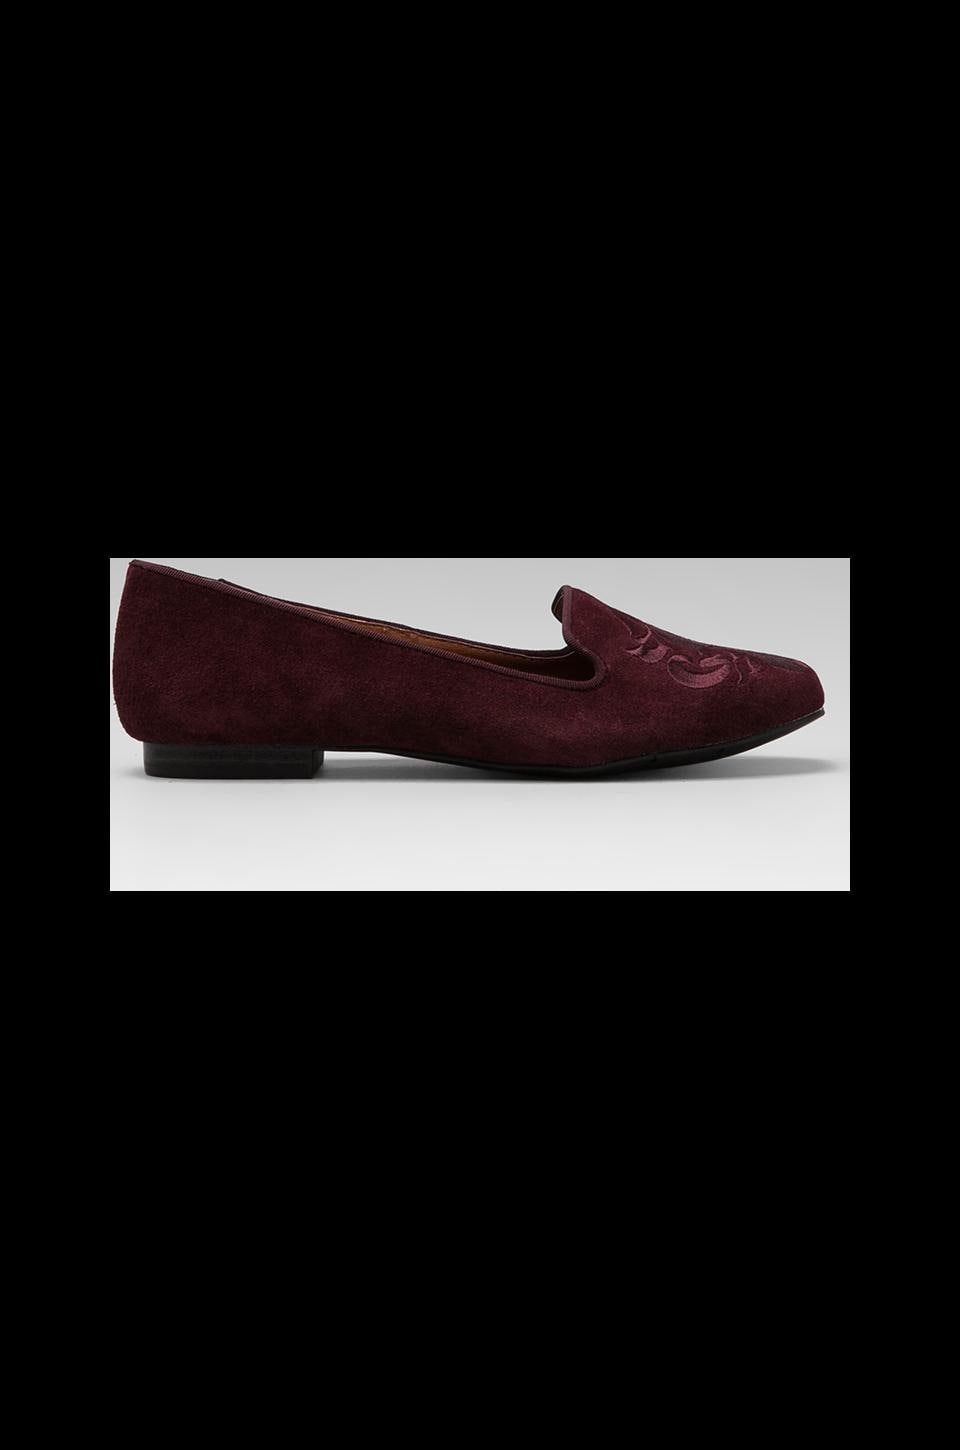 Dolce Vita Gelle Loafer in Bordeaux